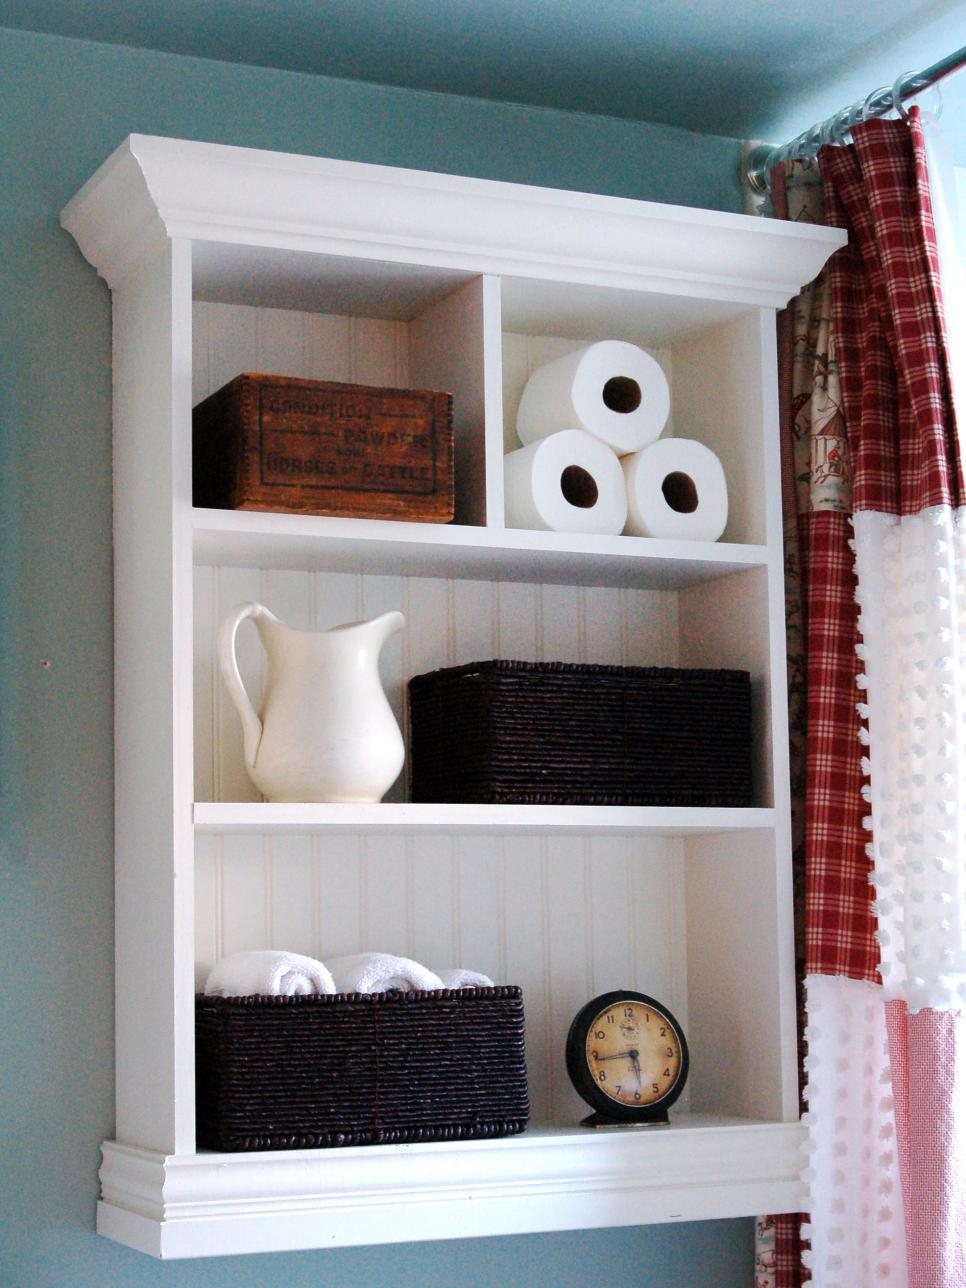 Fabulous Wall To Walk Storage Cabinets, Built In Wall Storage Bathroom intended for Best of Bathroom Wall Storage Ideas